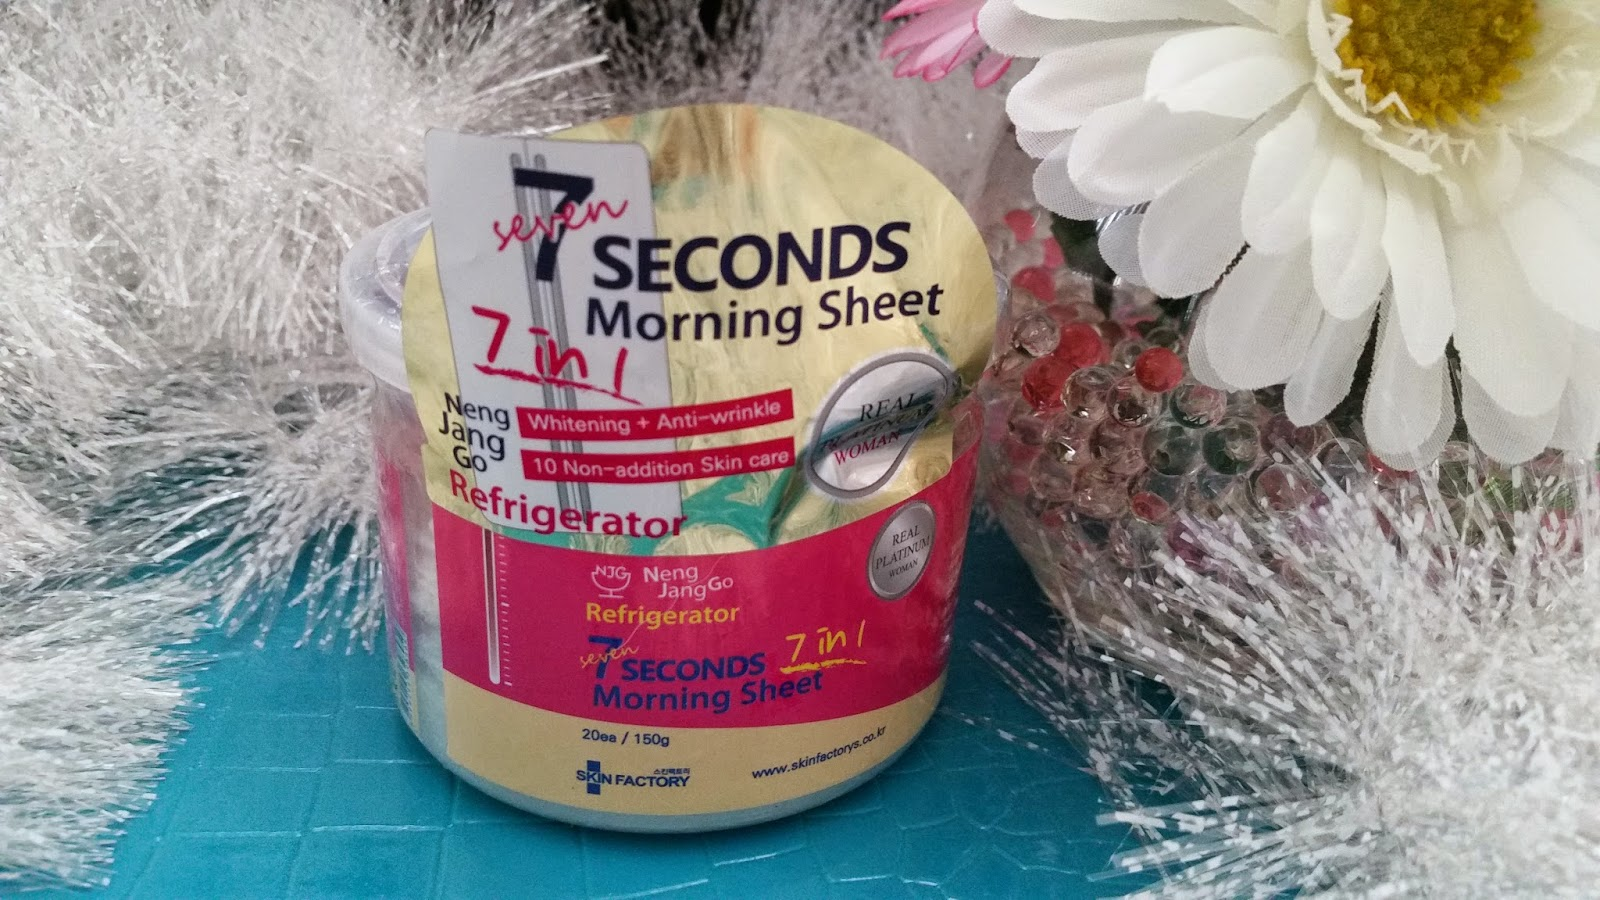 Review: Skin Factory 7 Seconds Morning Sheet